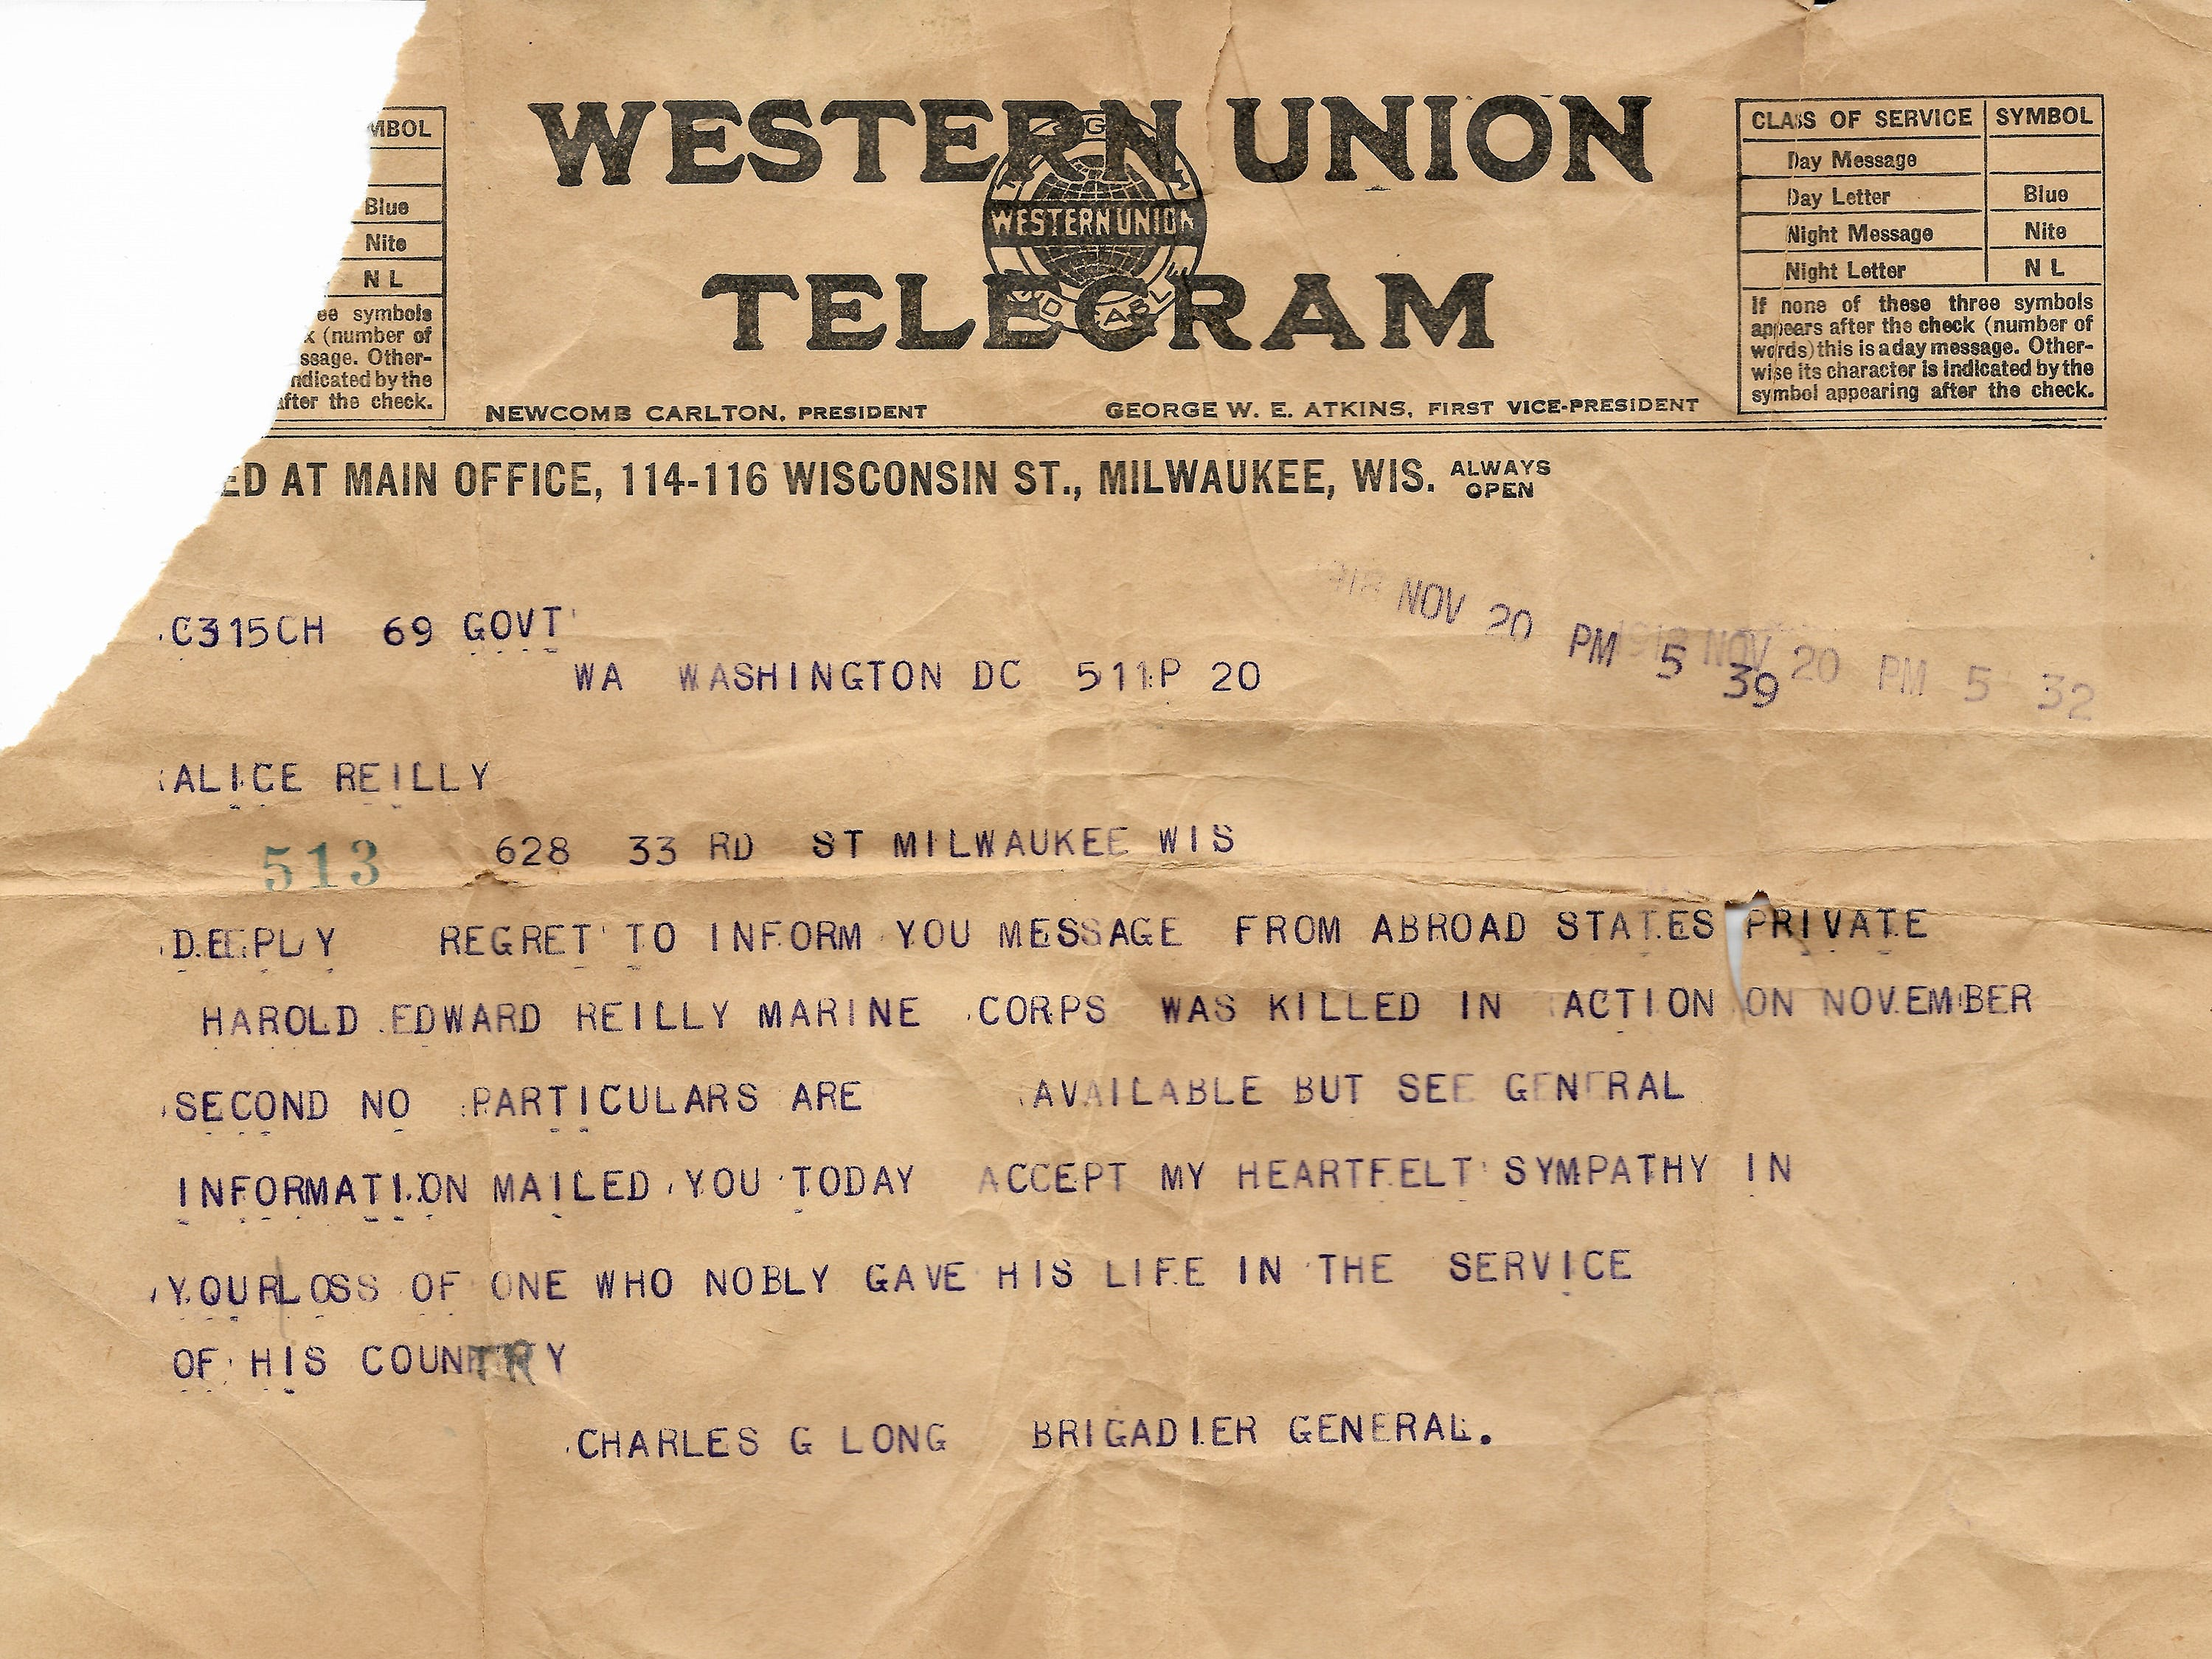 On Nov. 20,1918, nine days after the end of World War I, the Reilly family received a telegram informing them that Harold Reilly died in battle on Nov. 2. Reilly left Marquette University in May, 1917 to enlist in the U.S. Marines where he was assigned to the 81st Co., 6th Machine Gun Battalion. His unit arrived in France on Dec. 28, 1917. In September, 1918 was wounded and hospitalized until Oct. 31 and returned to his unit. On Nov. 2 Reilly died by artillery, nine days before the end of World War 1. Reilly's parents did not learn of their loss until Nov. 20.